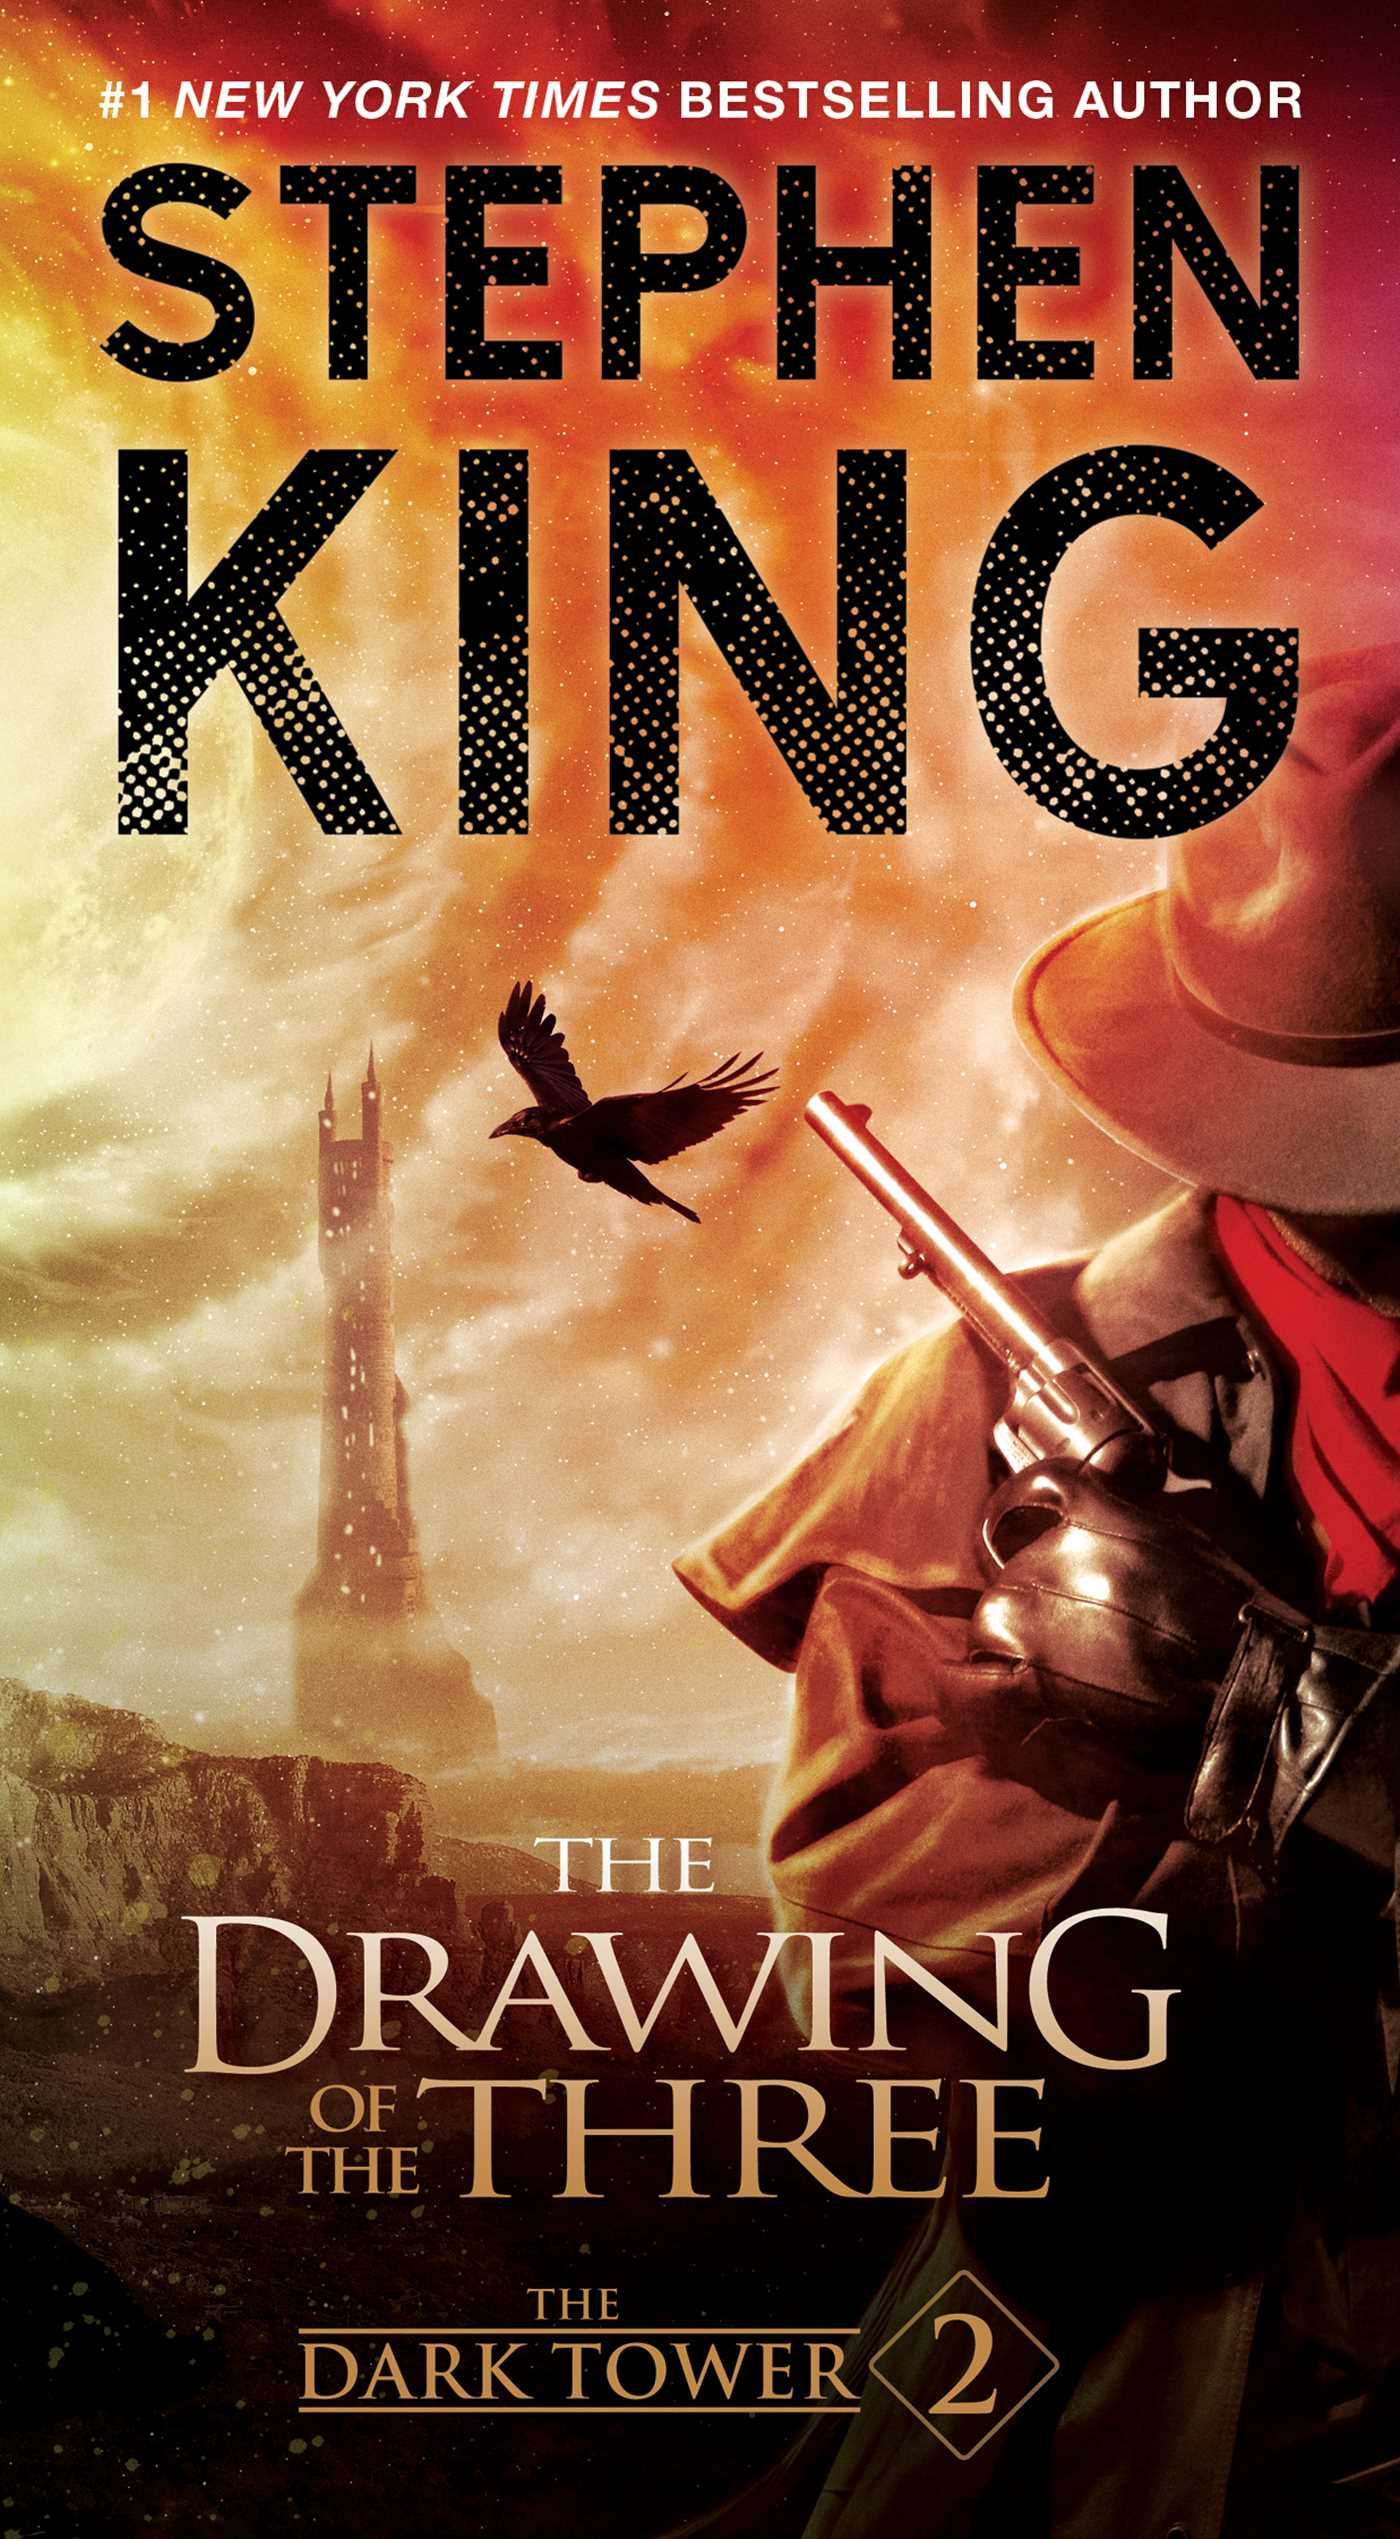 The dark tower ii 9781501161810 hr